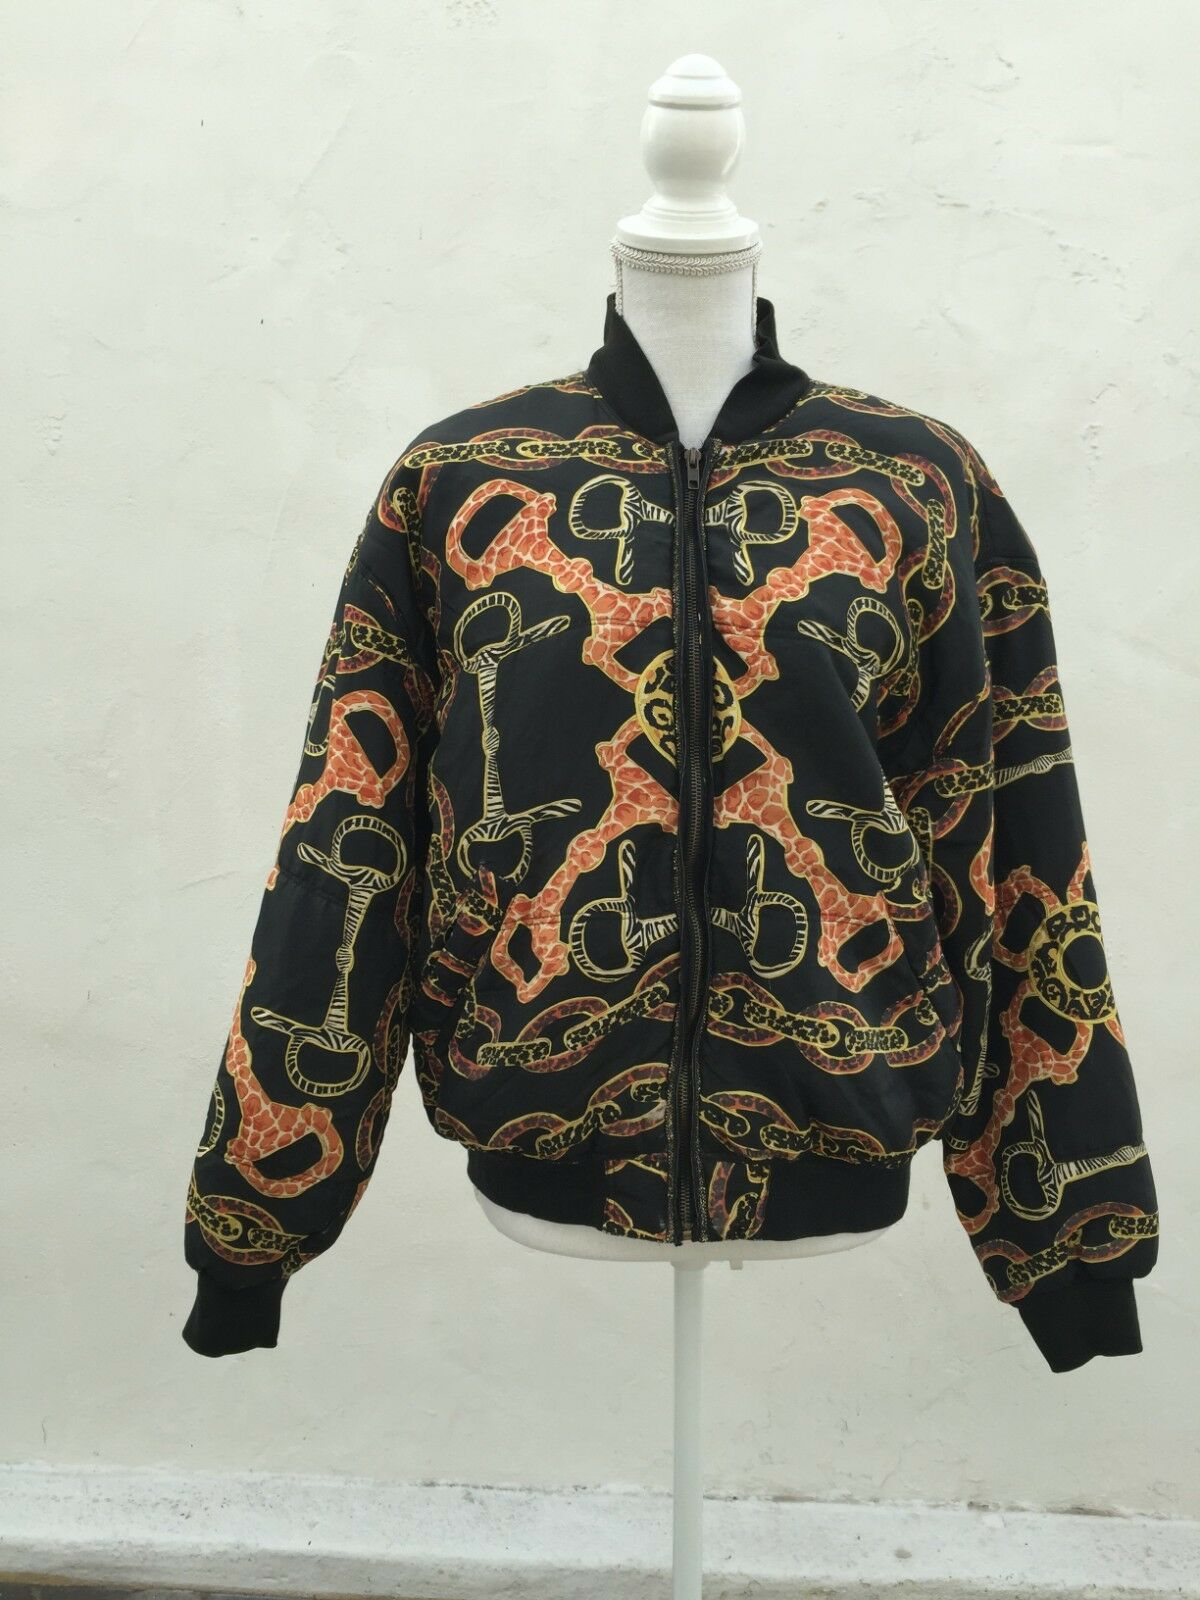 SALE Price Cut Baroque SIlk Chain Link Print Print Print Bomber Size Medium fda4db